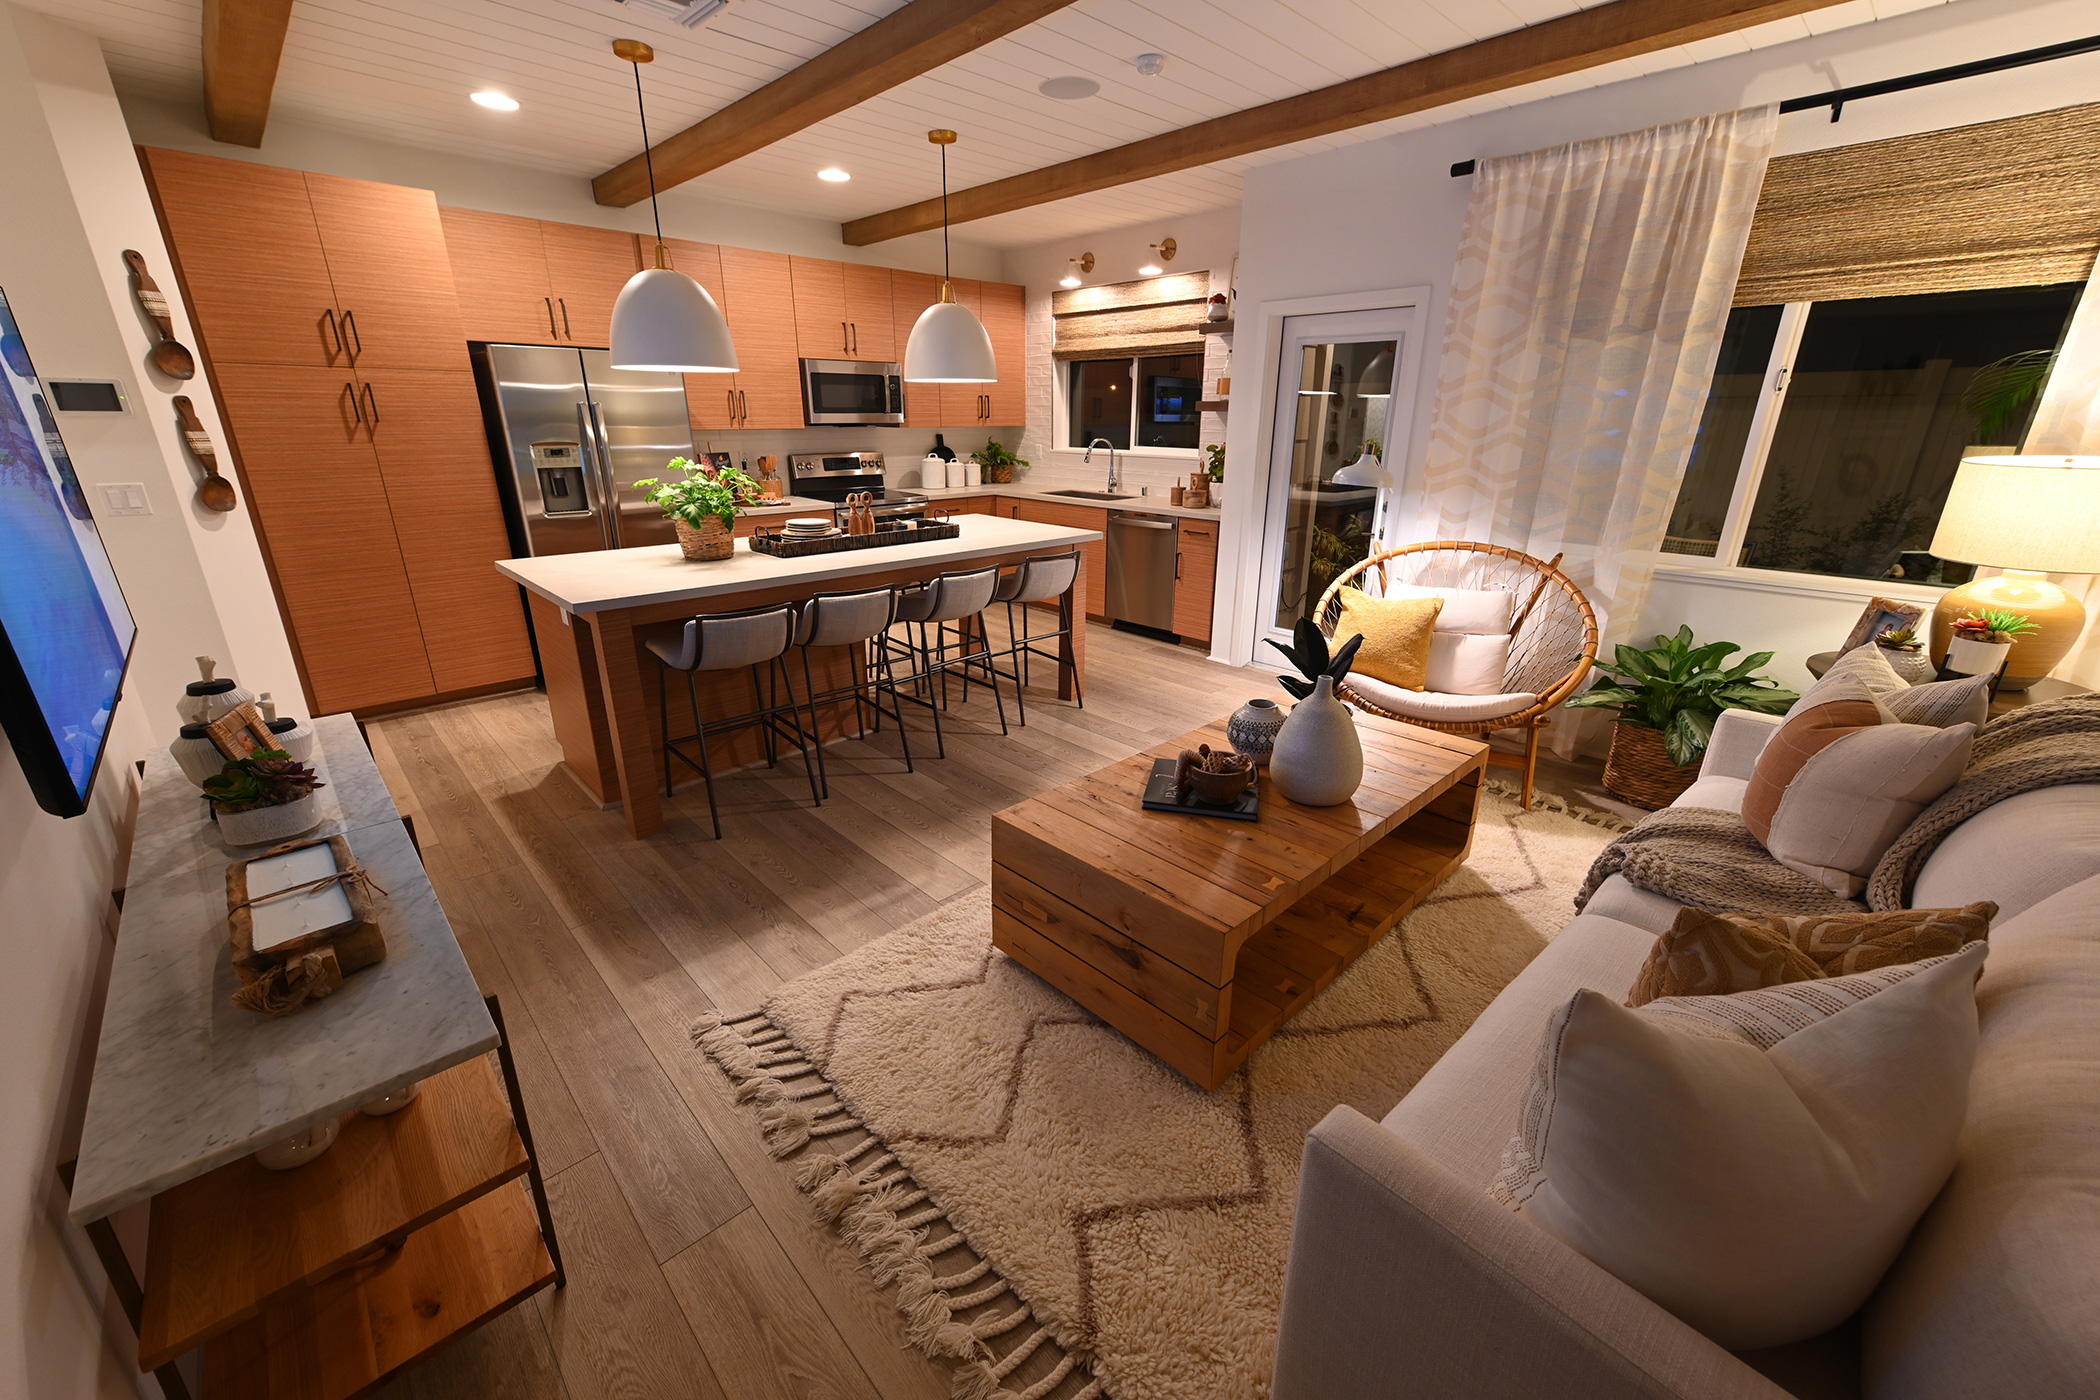 NorthPark Plan 2 - Kitchen and Living Room